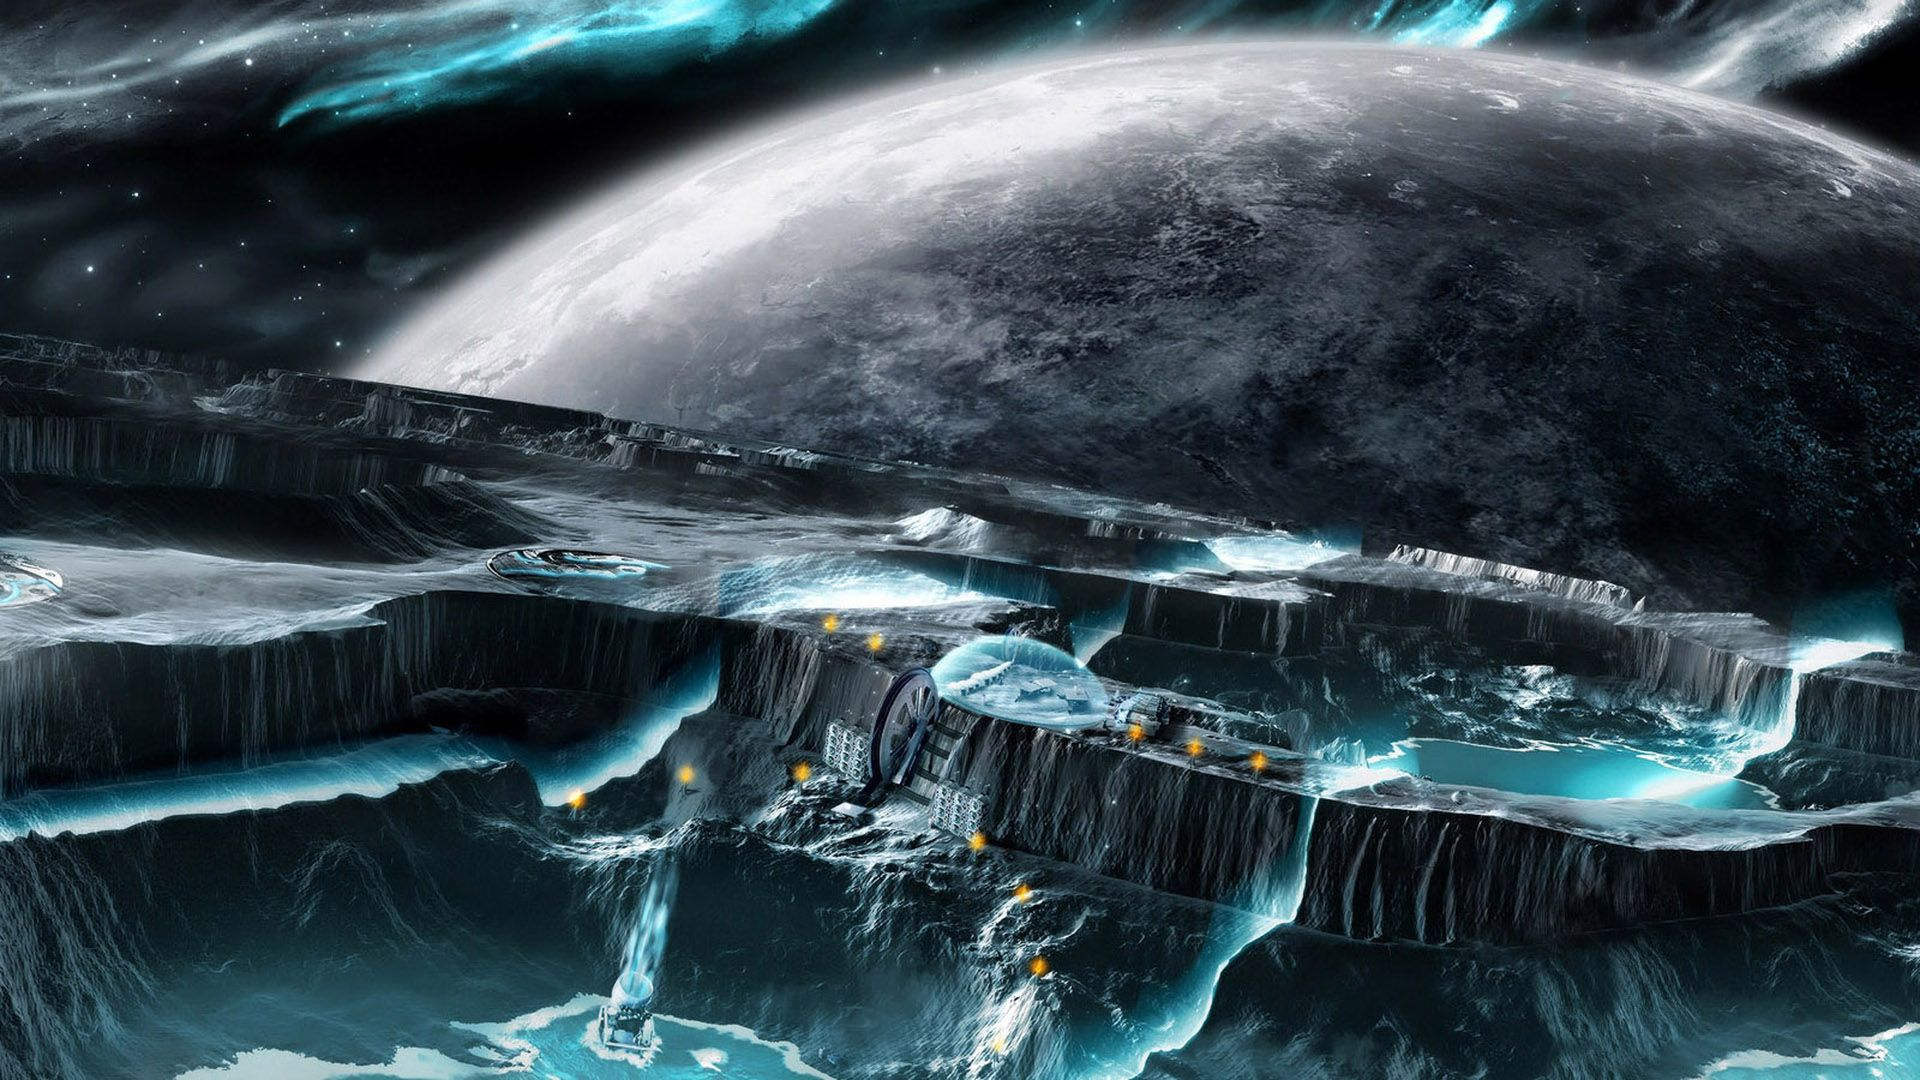 space fantasy hd desktop wallpapers : get free top quality space